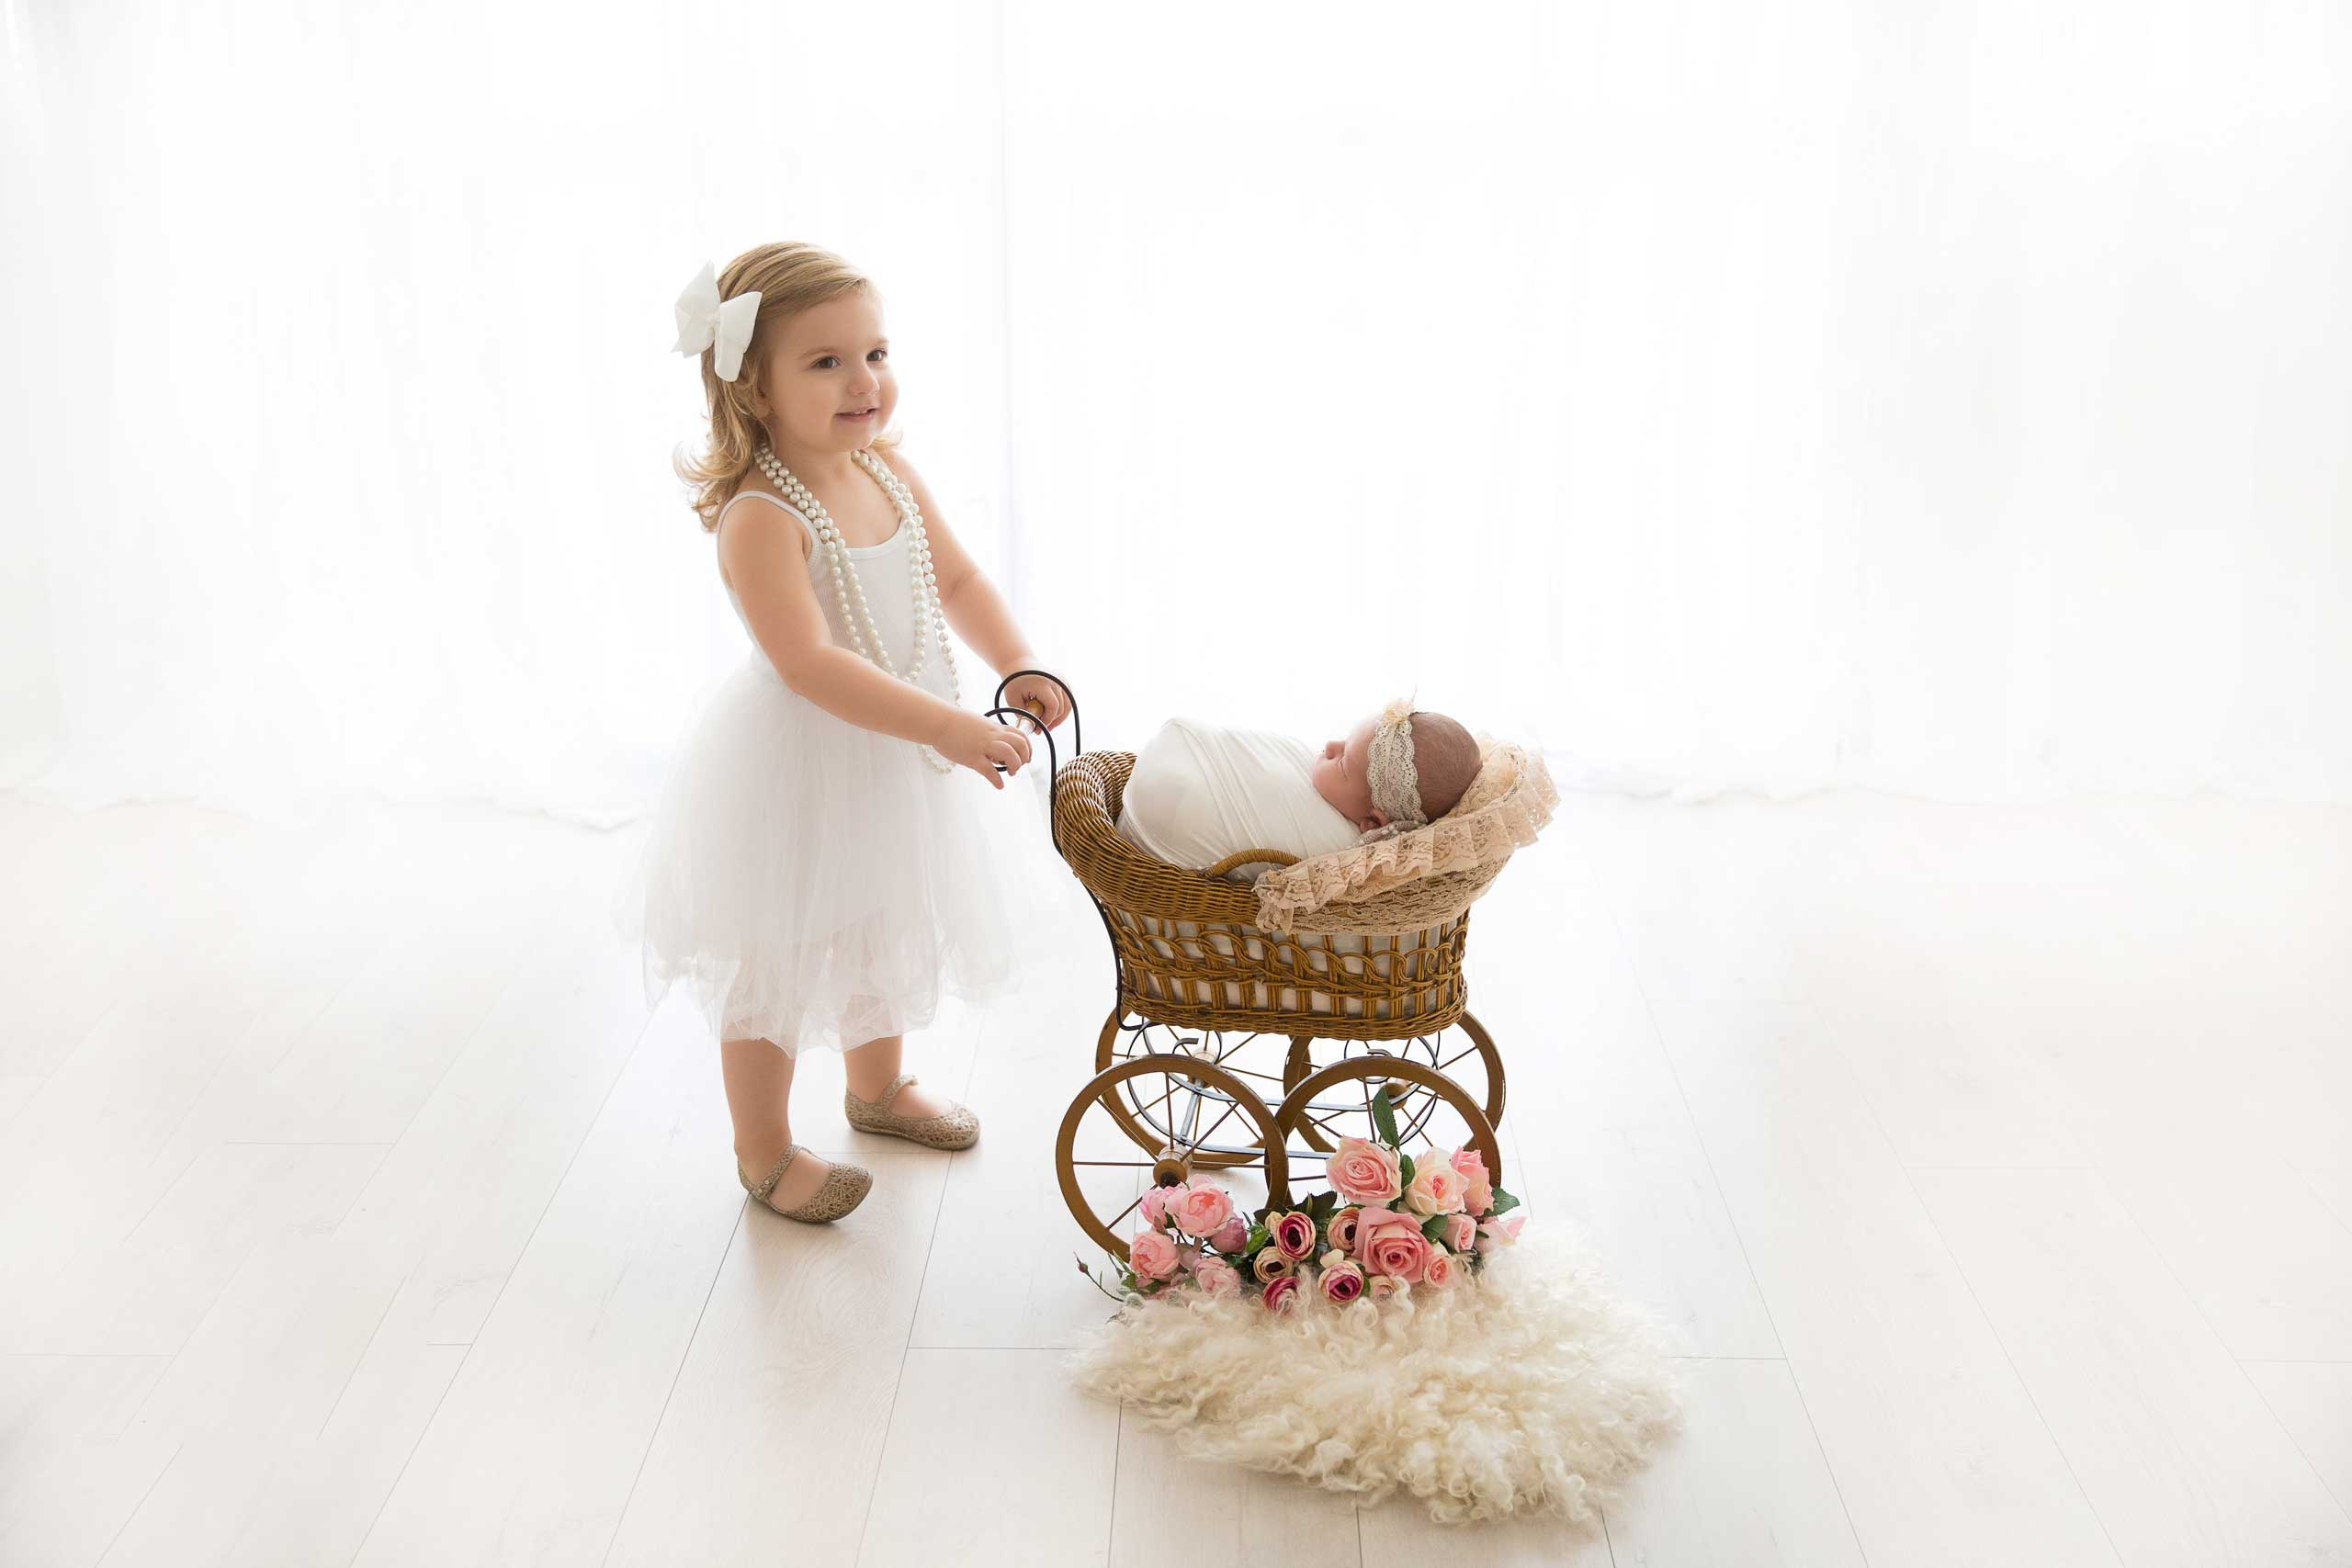 newborn photo session taken by Ramina Magid Photography in Los Angeles. Baby in the stroller